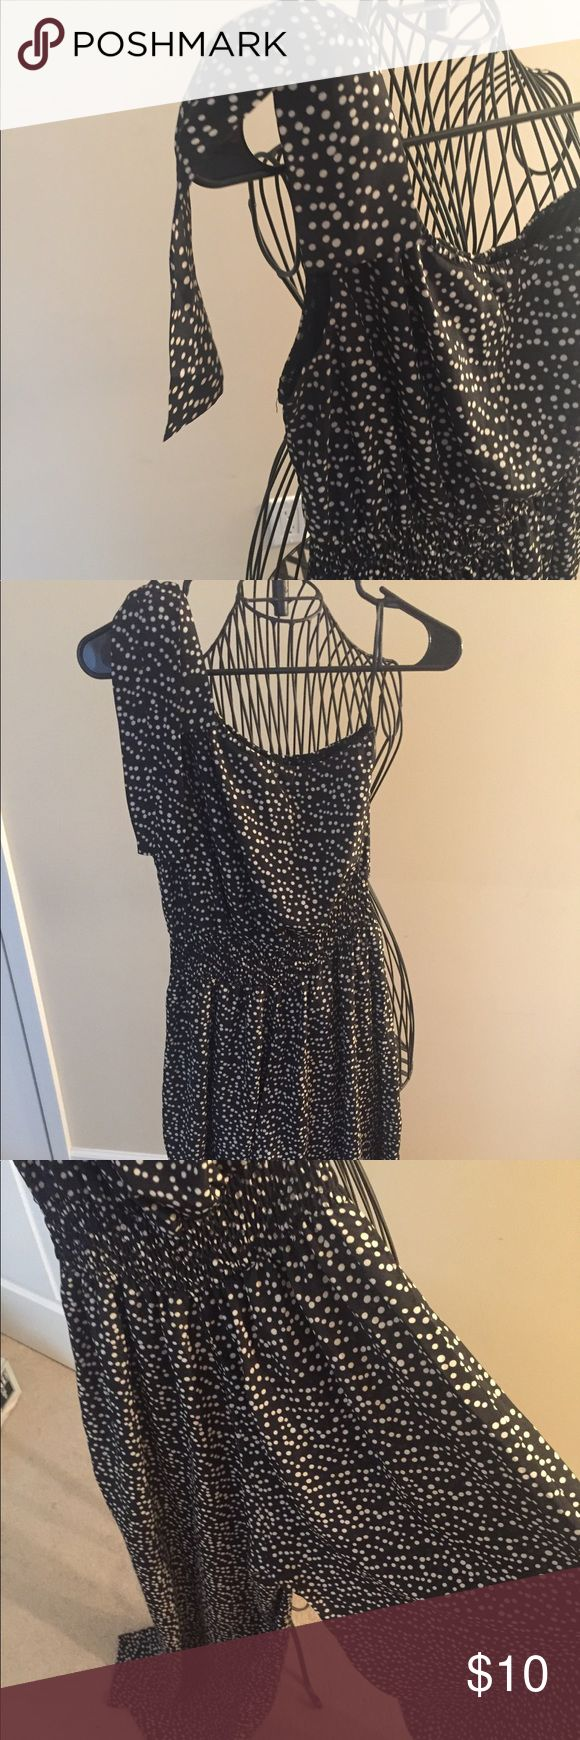 Polka dot jumper Polka dot black and white jumper size 10 but runs smalls. Would fit a size 6/8 Other